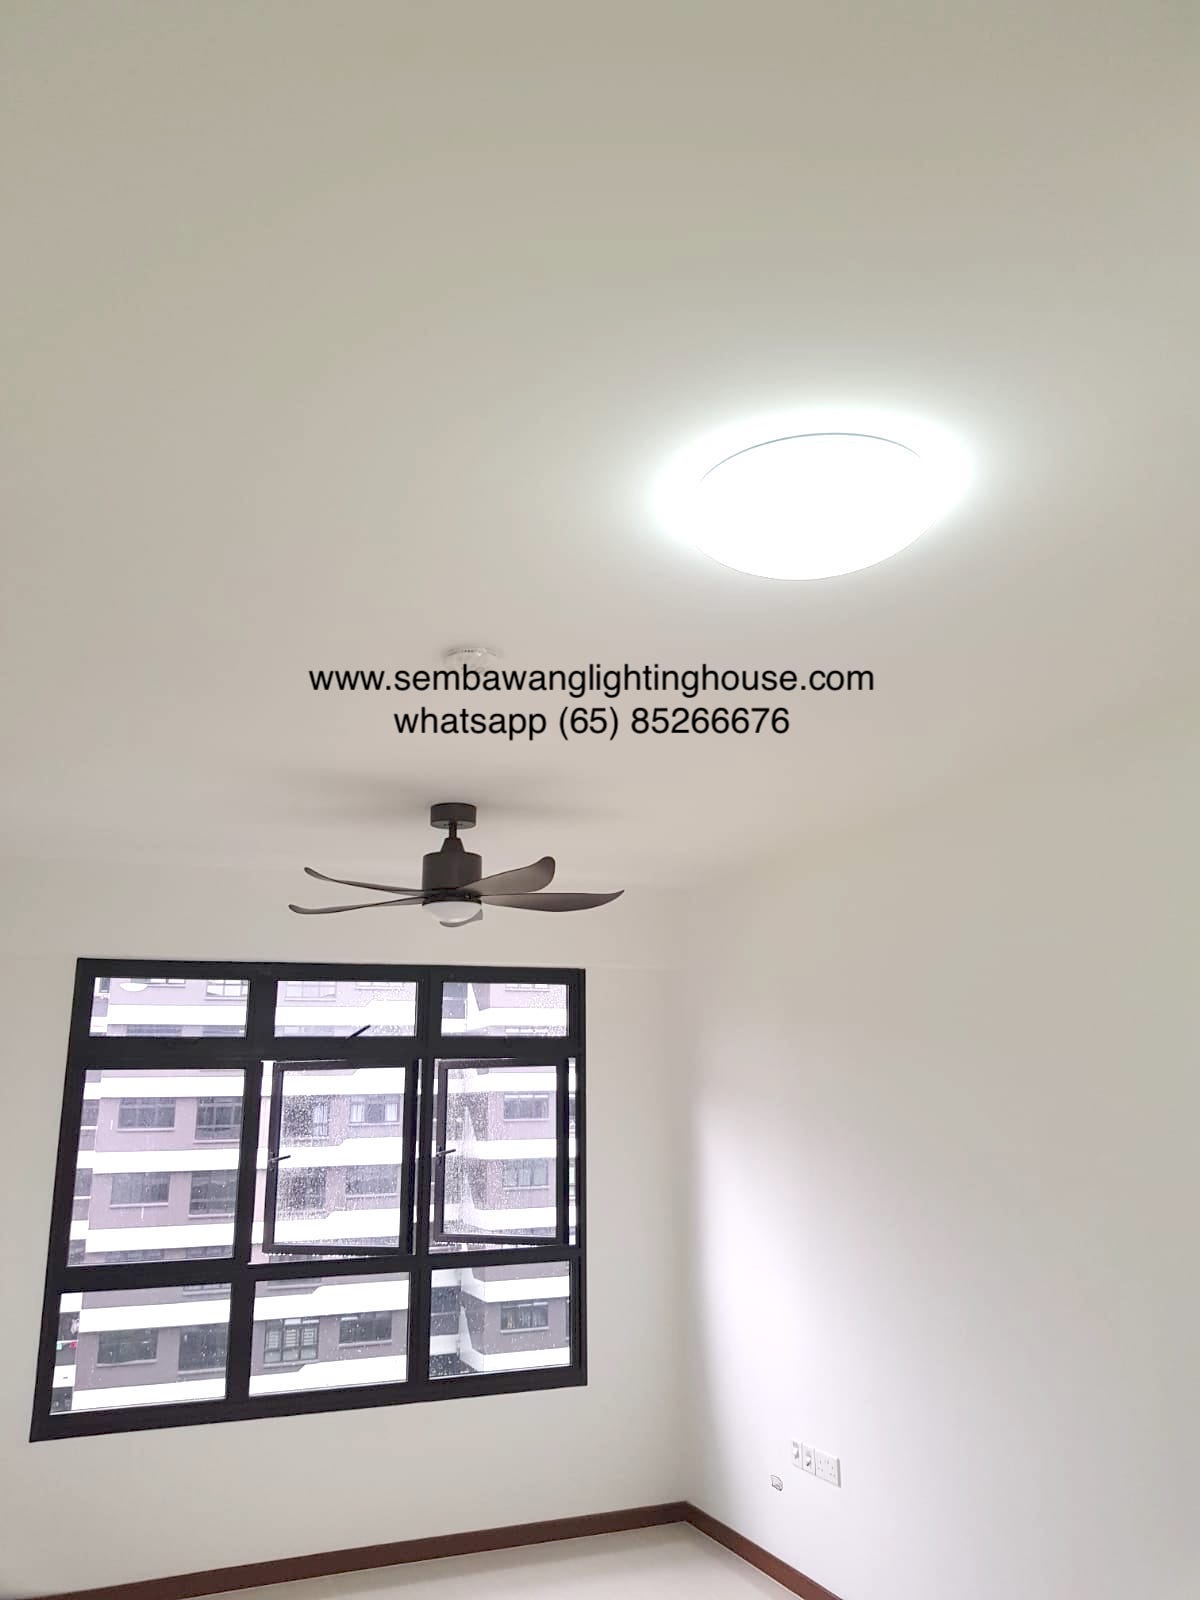 crestar-valueair-5-blade-black-ceiling-fan-sample-sembawang-lighting-house-11.jpg